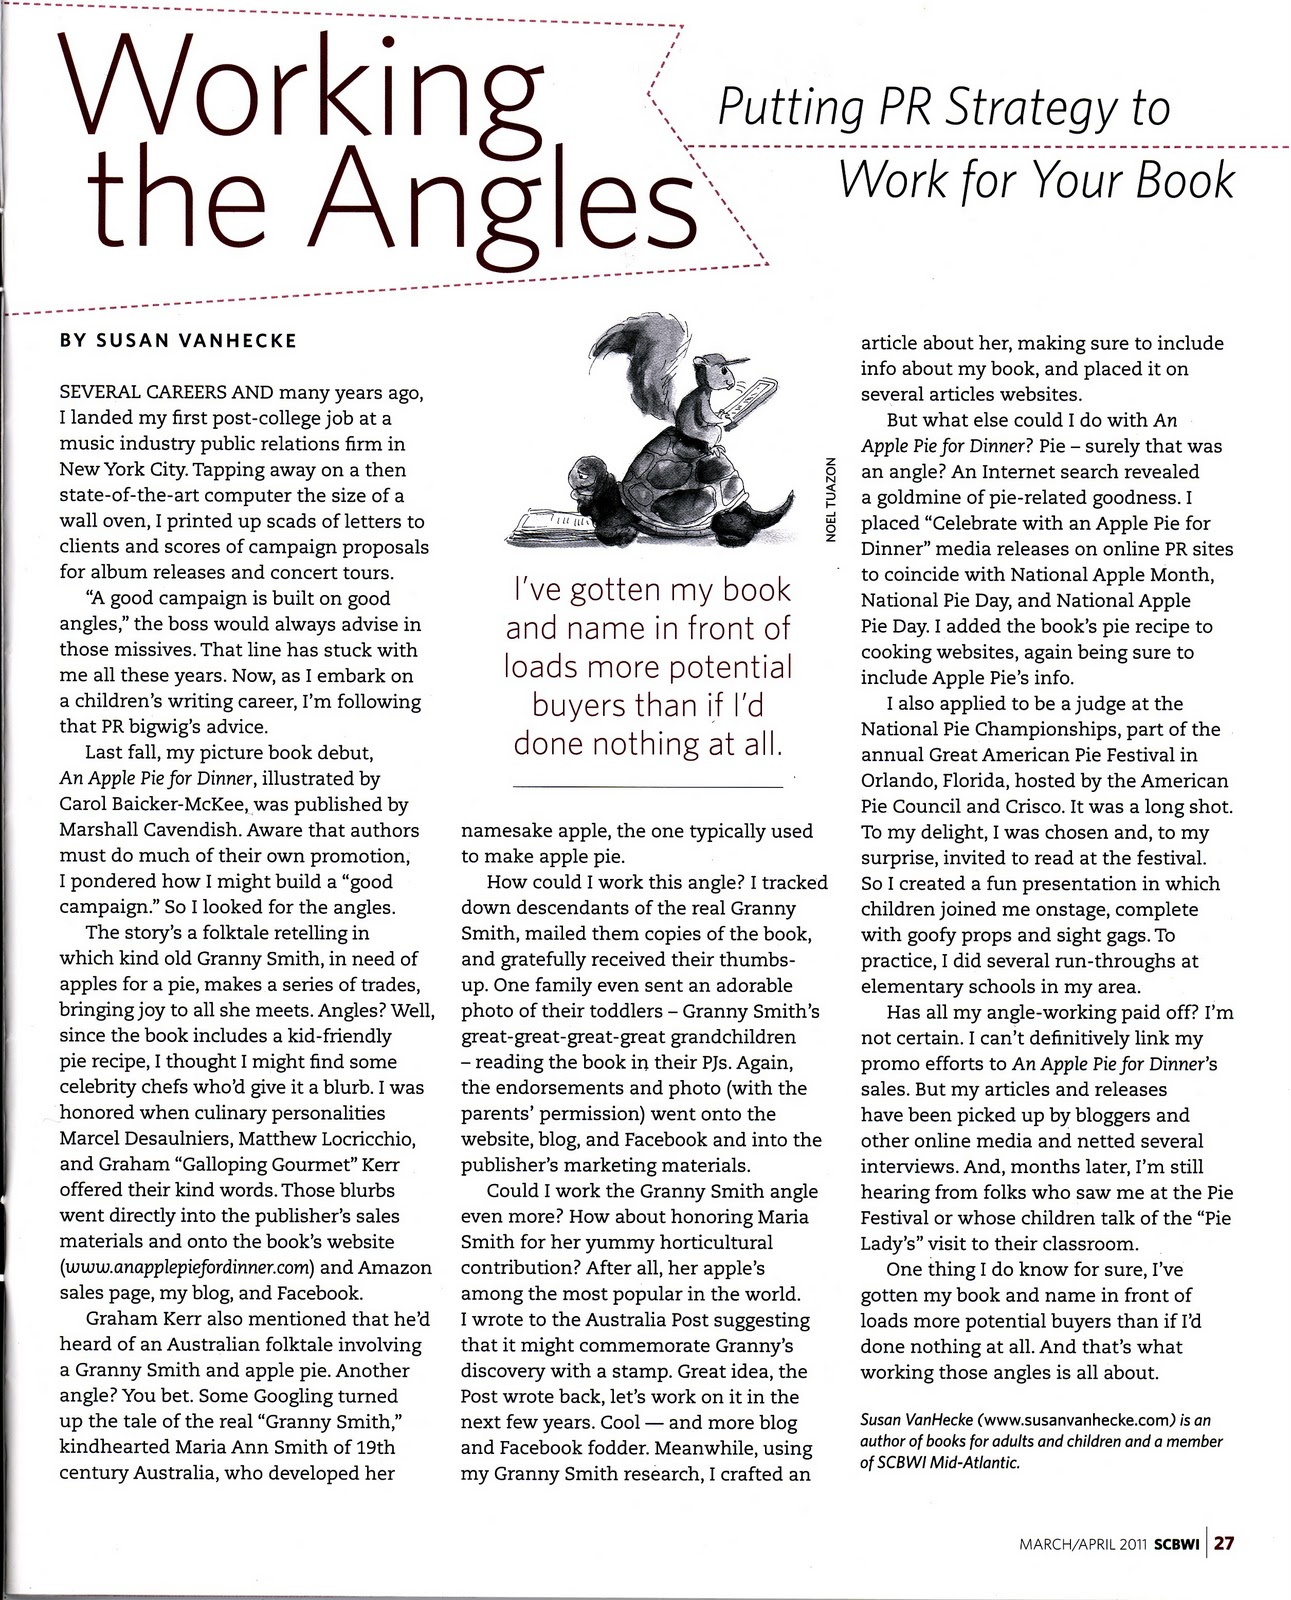 resources for writers susan vanhecke working the angles putting pr strategy to work for your book